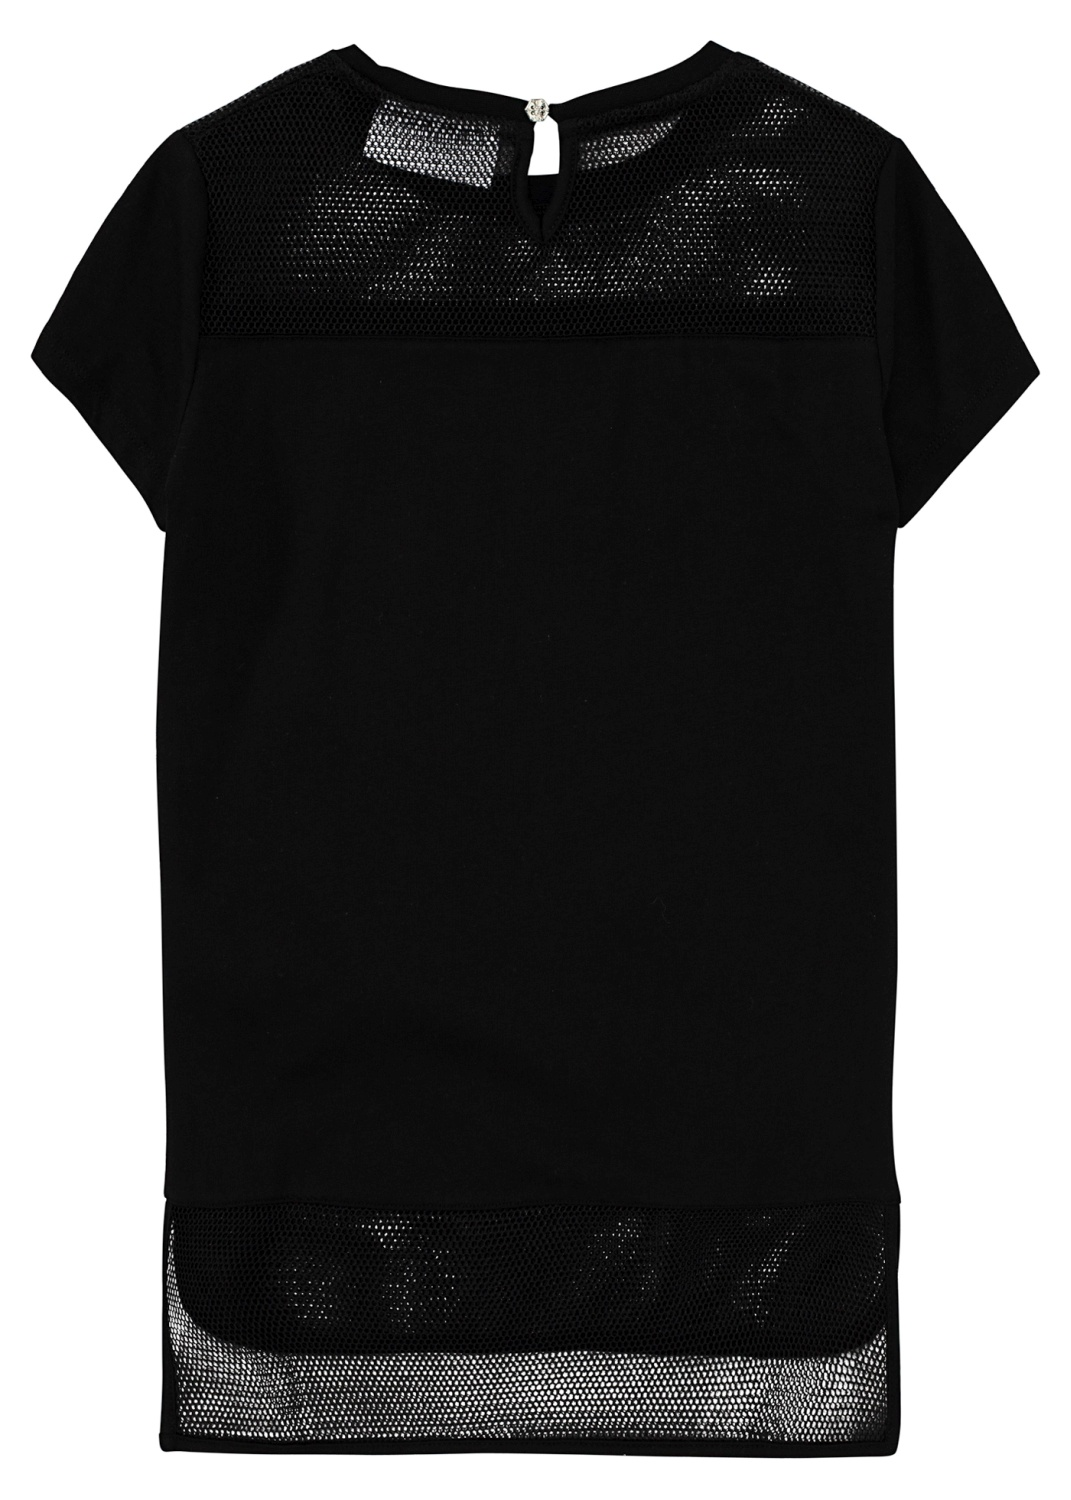 Philipp Plein TM T-shirt Round Neck SS image number 1